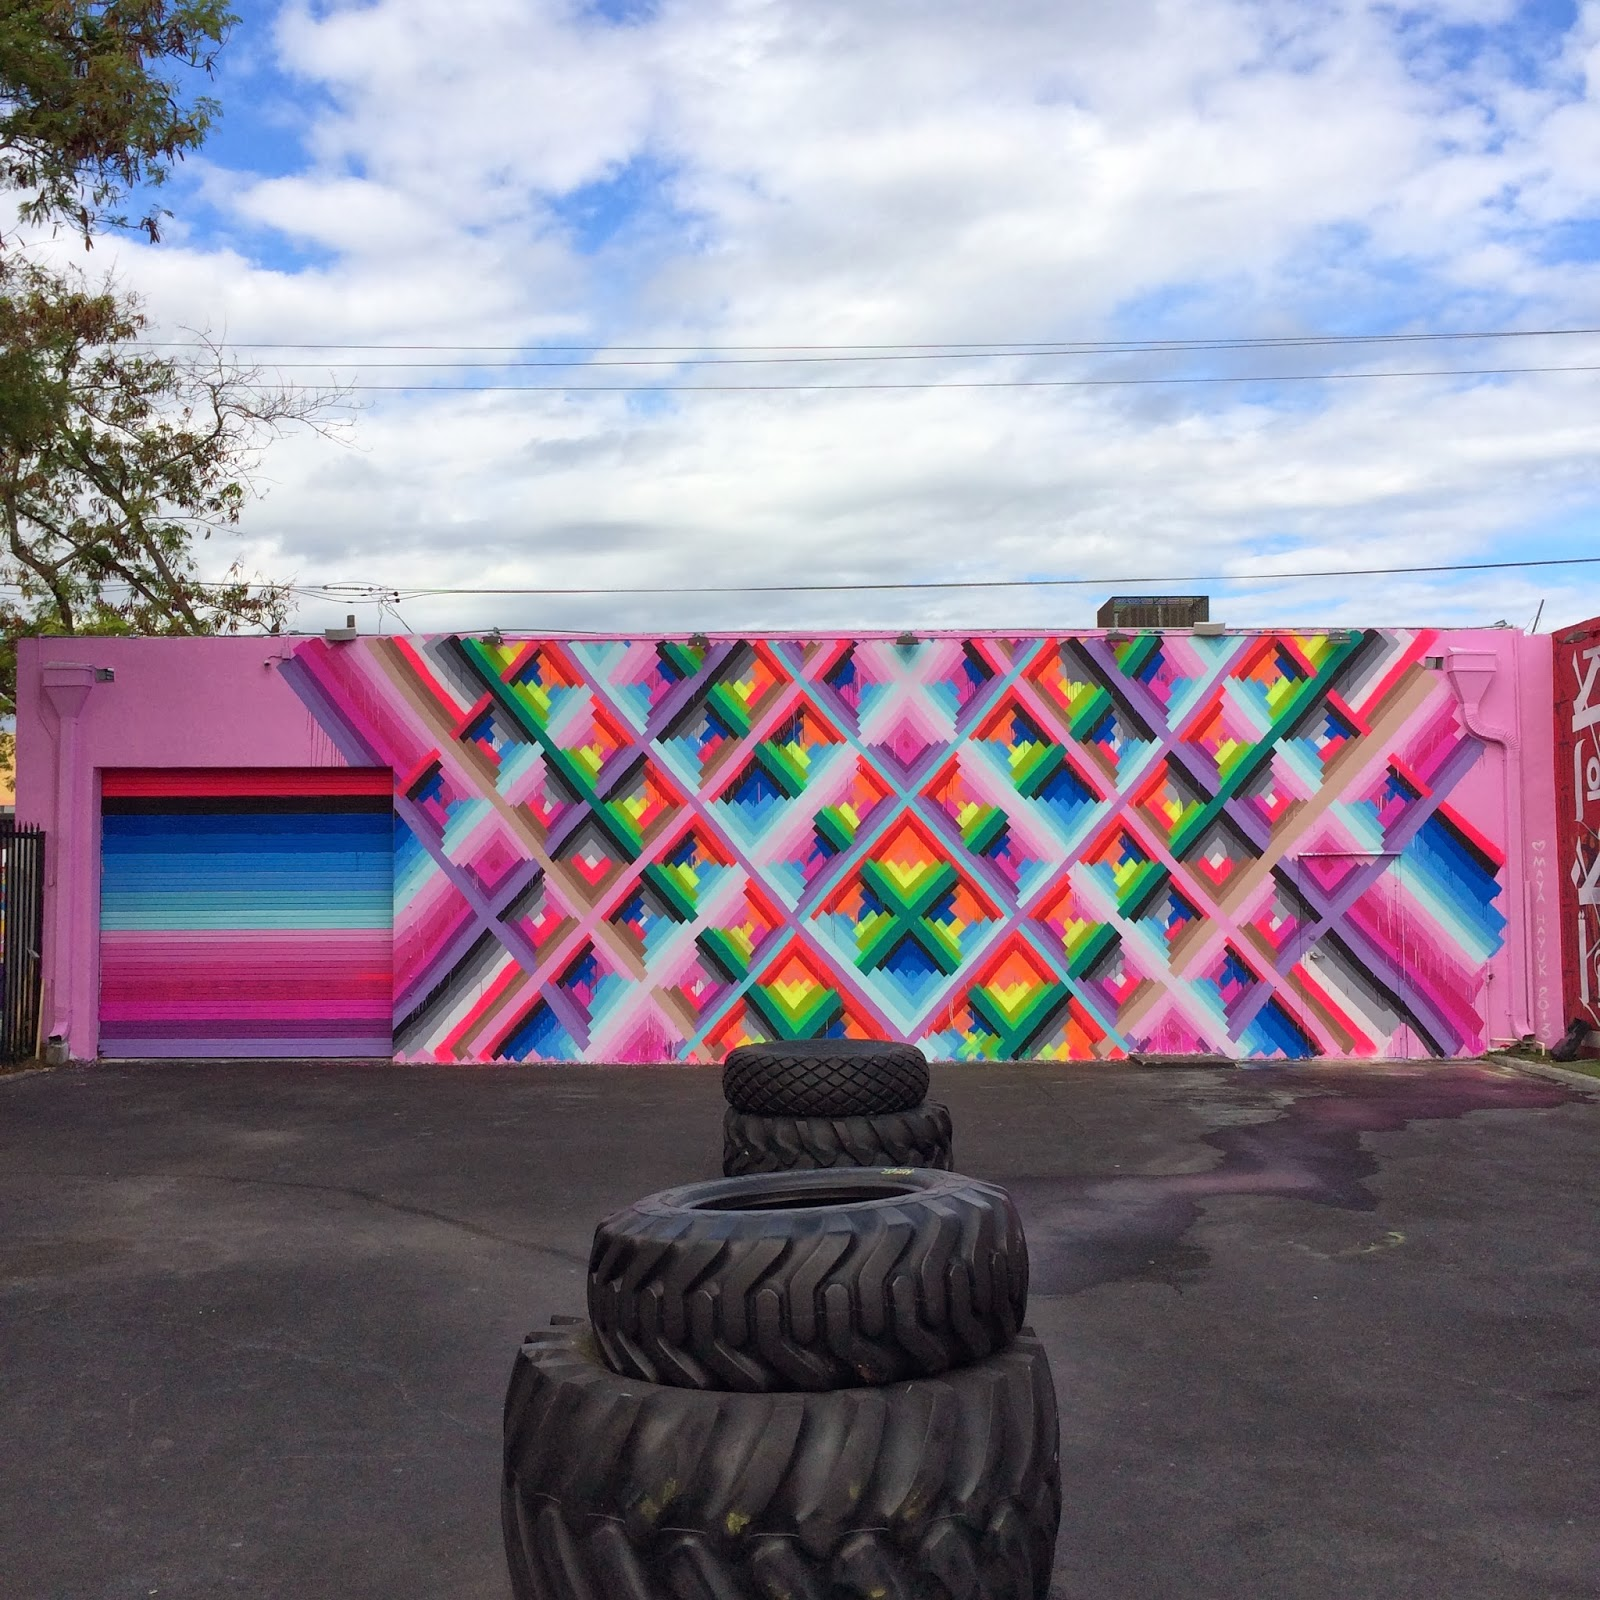 Maya Hayuk New Mural For Art Basel 13 Wynwood Walls